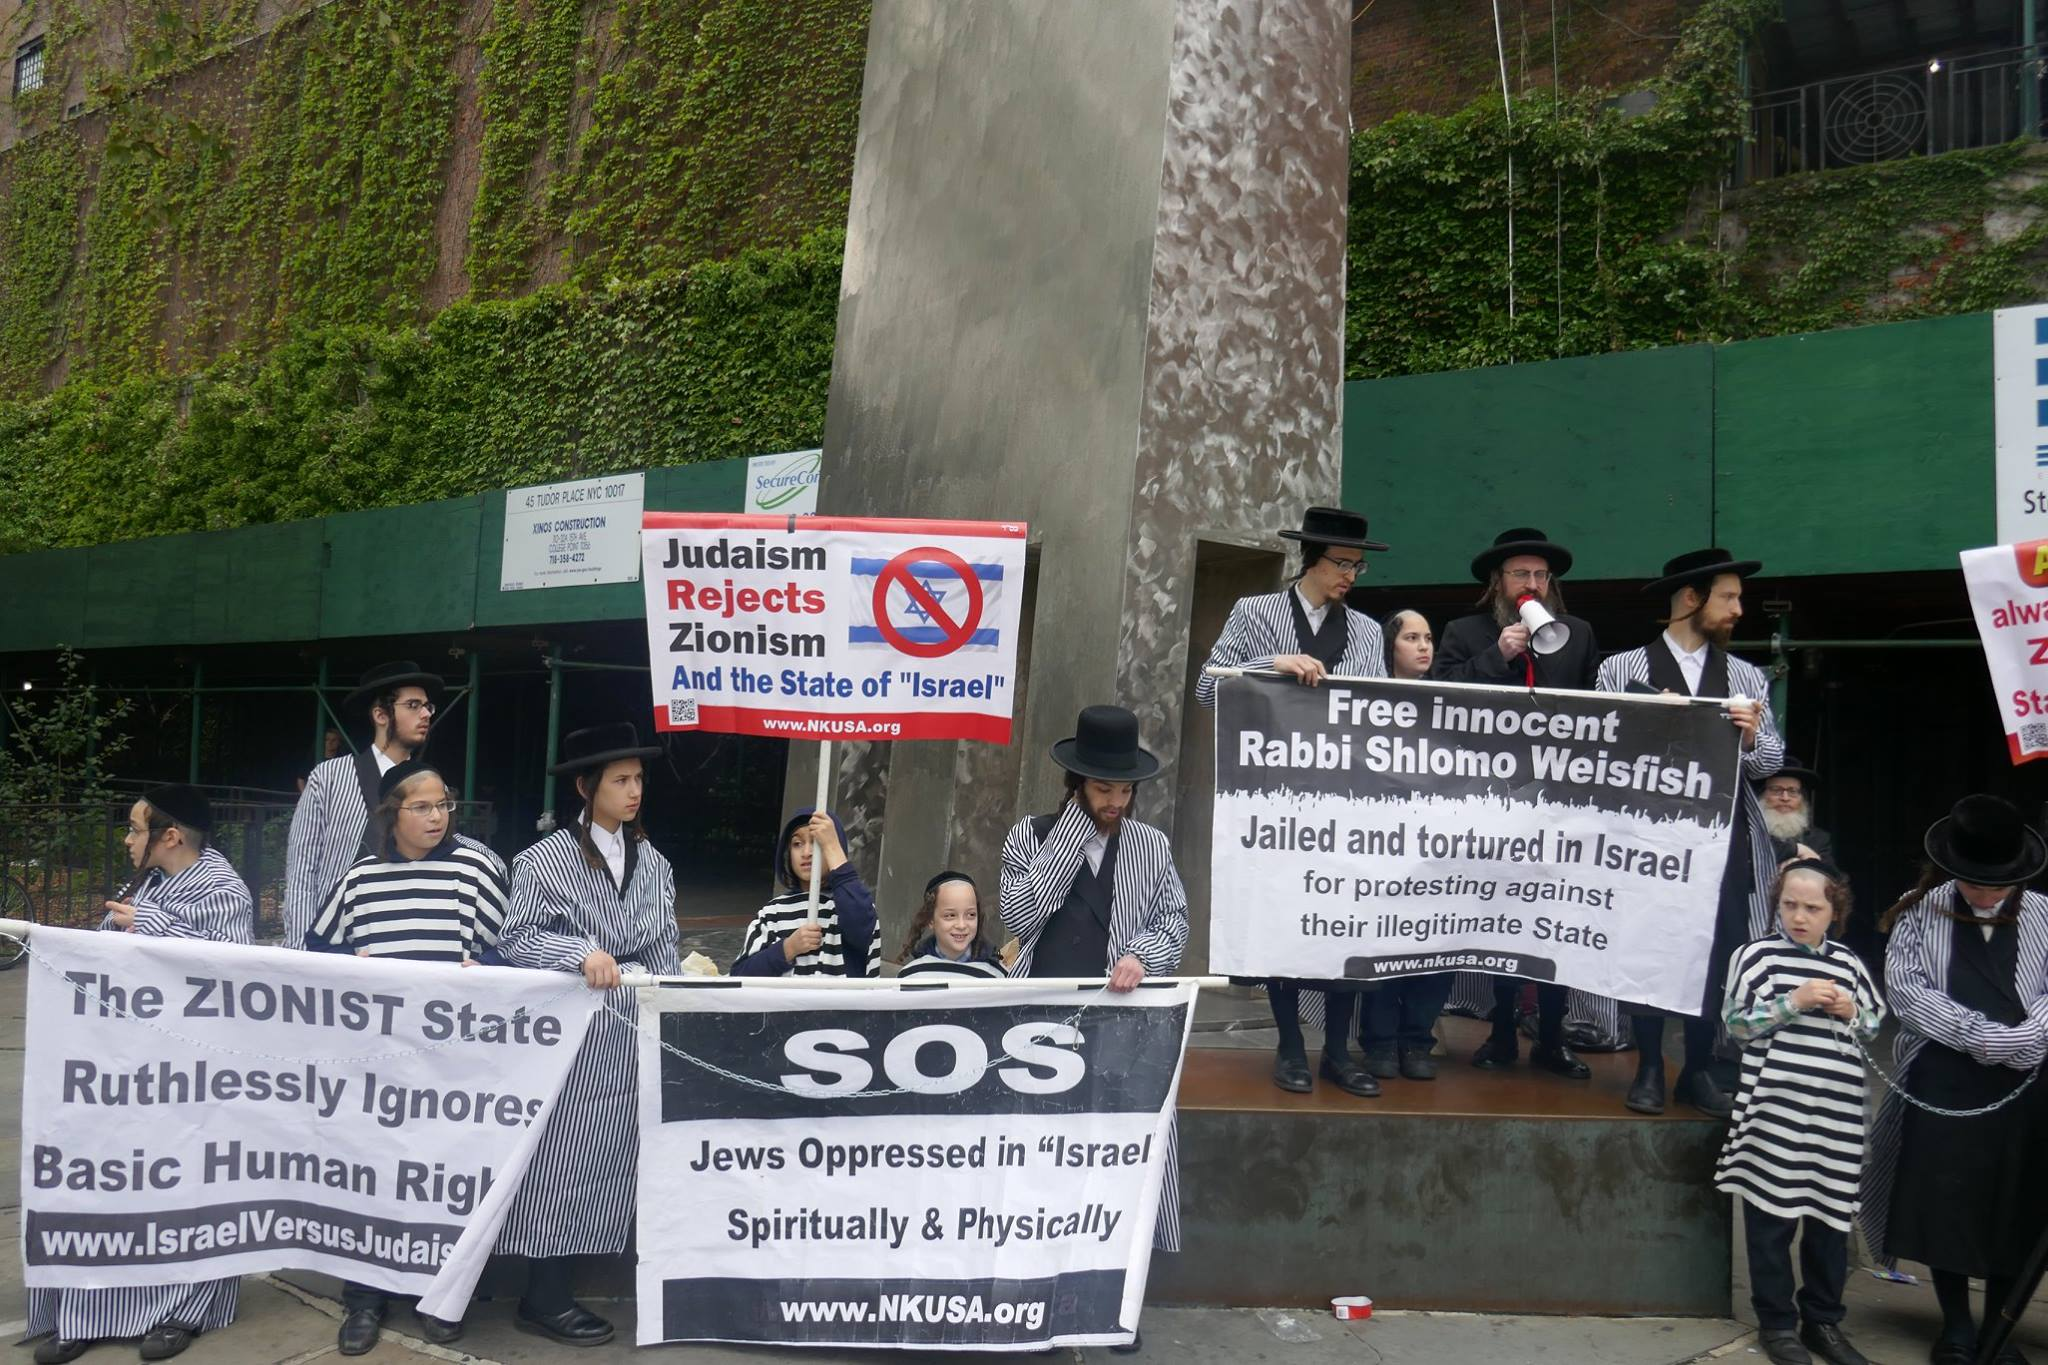 Anti-Zionist Orthodox Jews plead with the UN for protection